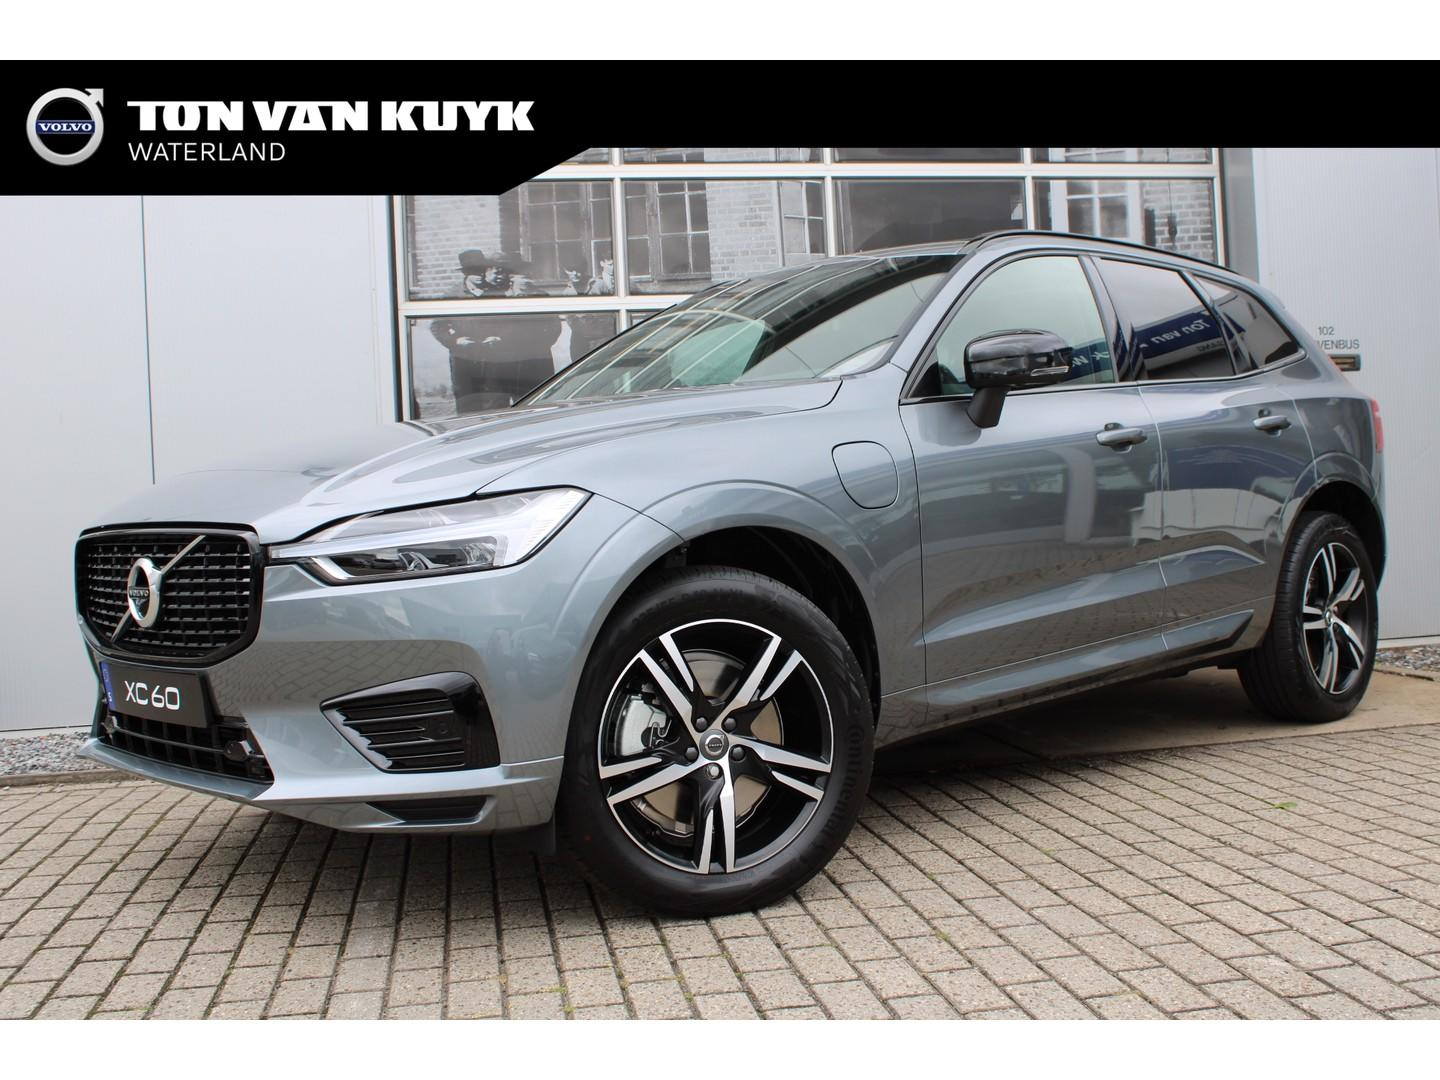 Volvo Xc60 T6 te 340pk automaat awd r-design / climate pack / power seats / lounge